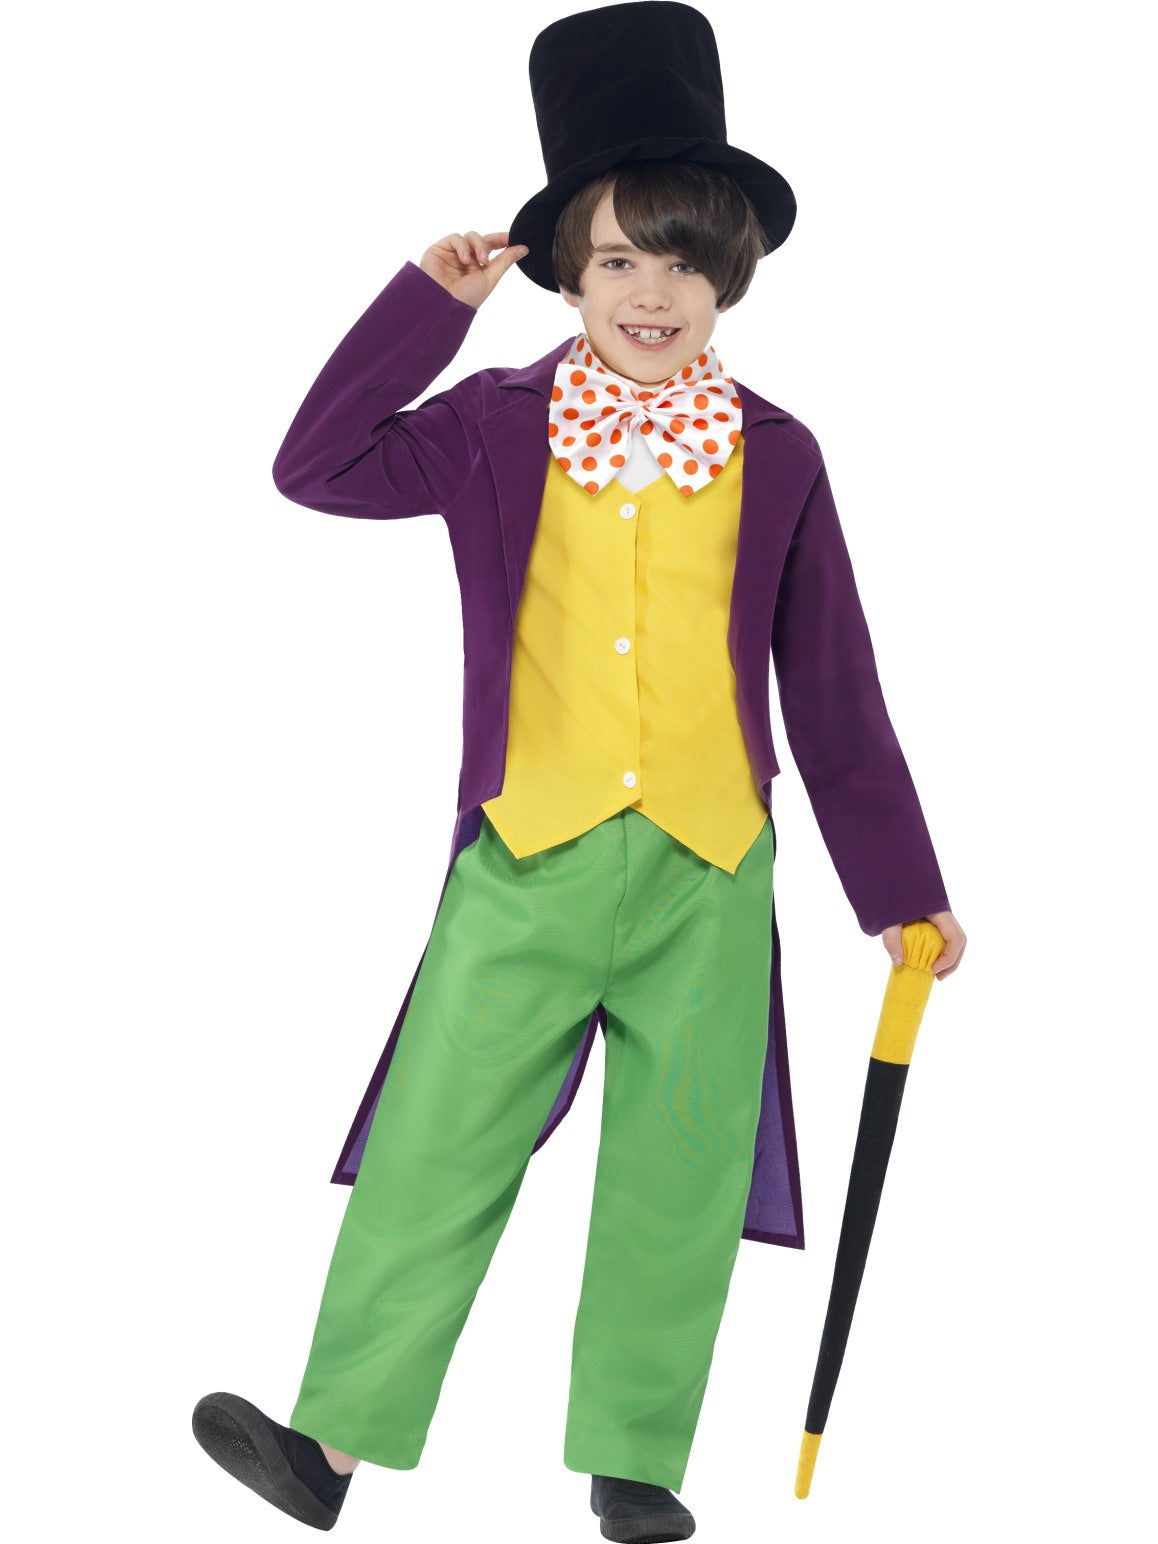 Boys Costume - Roald Dahl Willy Wonka